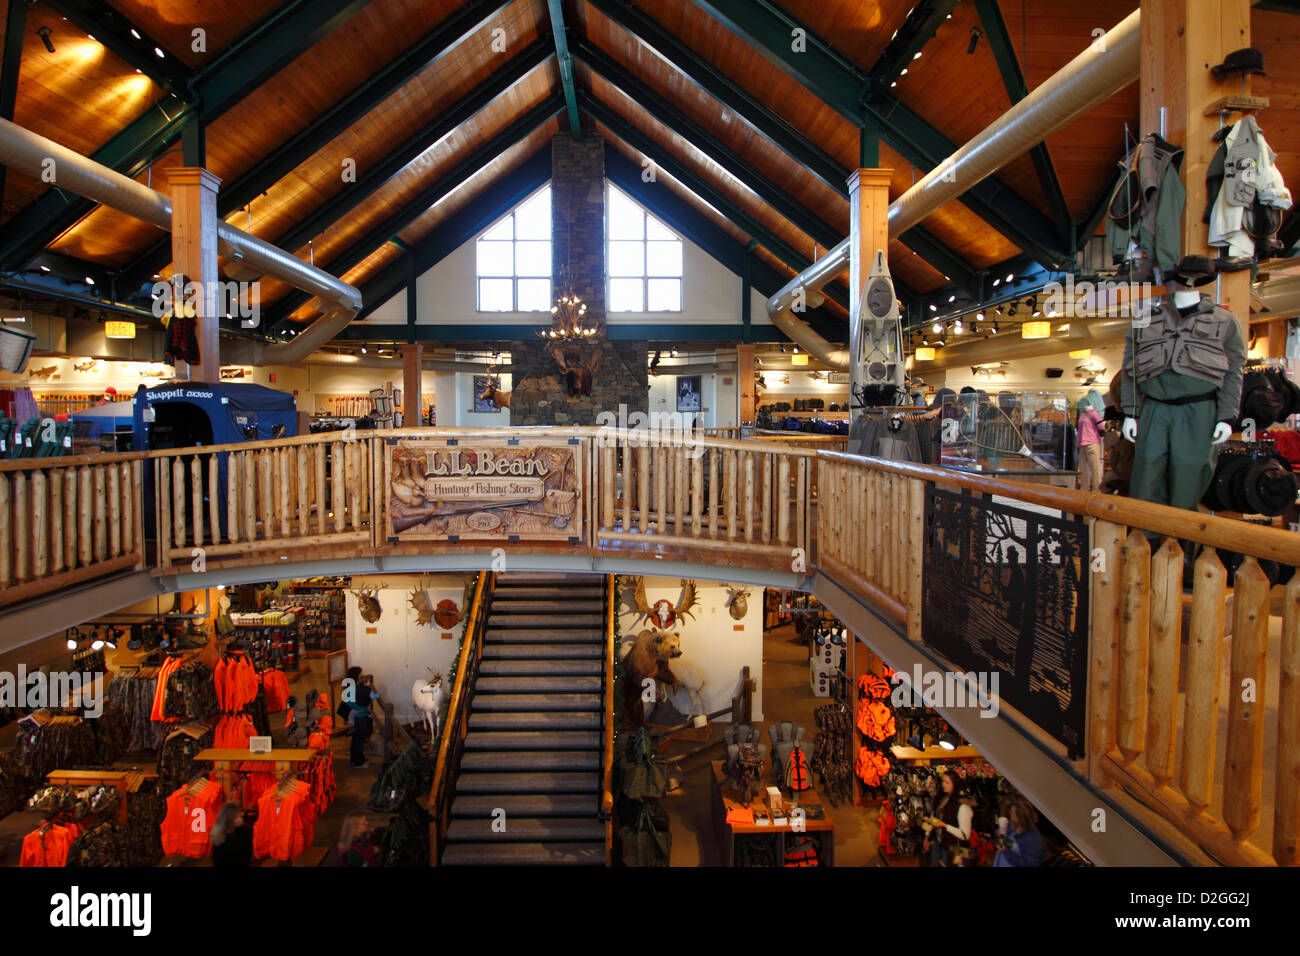 The interior of L.L. LL Bean store in Freeport Maine USA - Stock Image